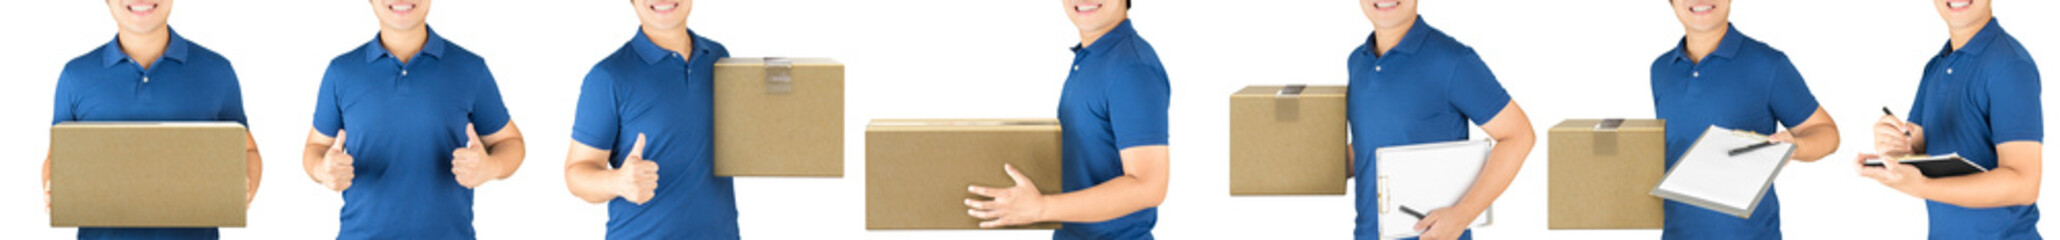 delivery man isolated on white